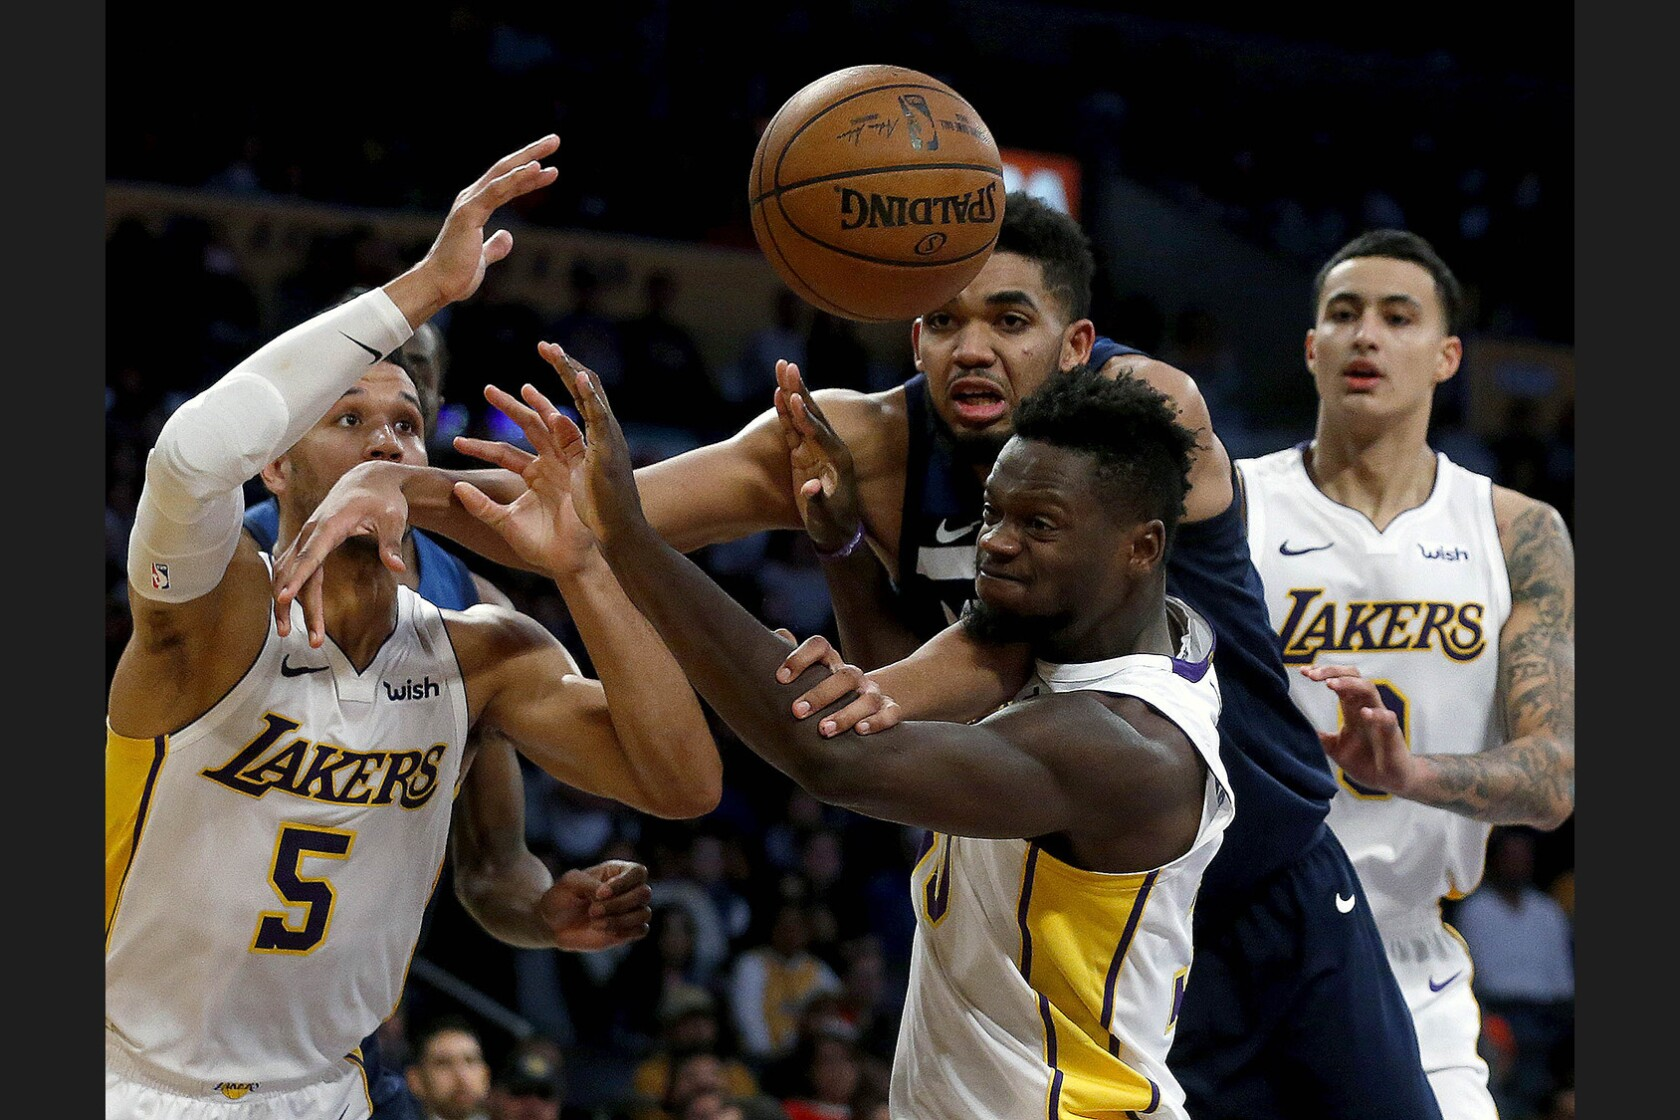 Lakers can't stop Timberwolves despite 31 points from Kyle